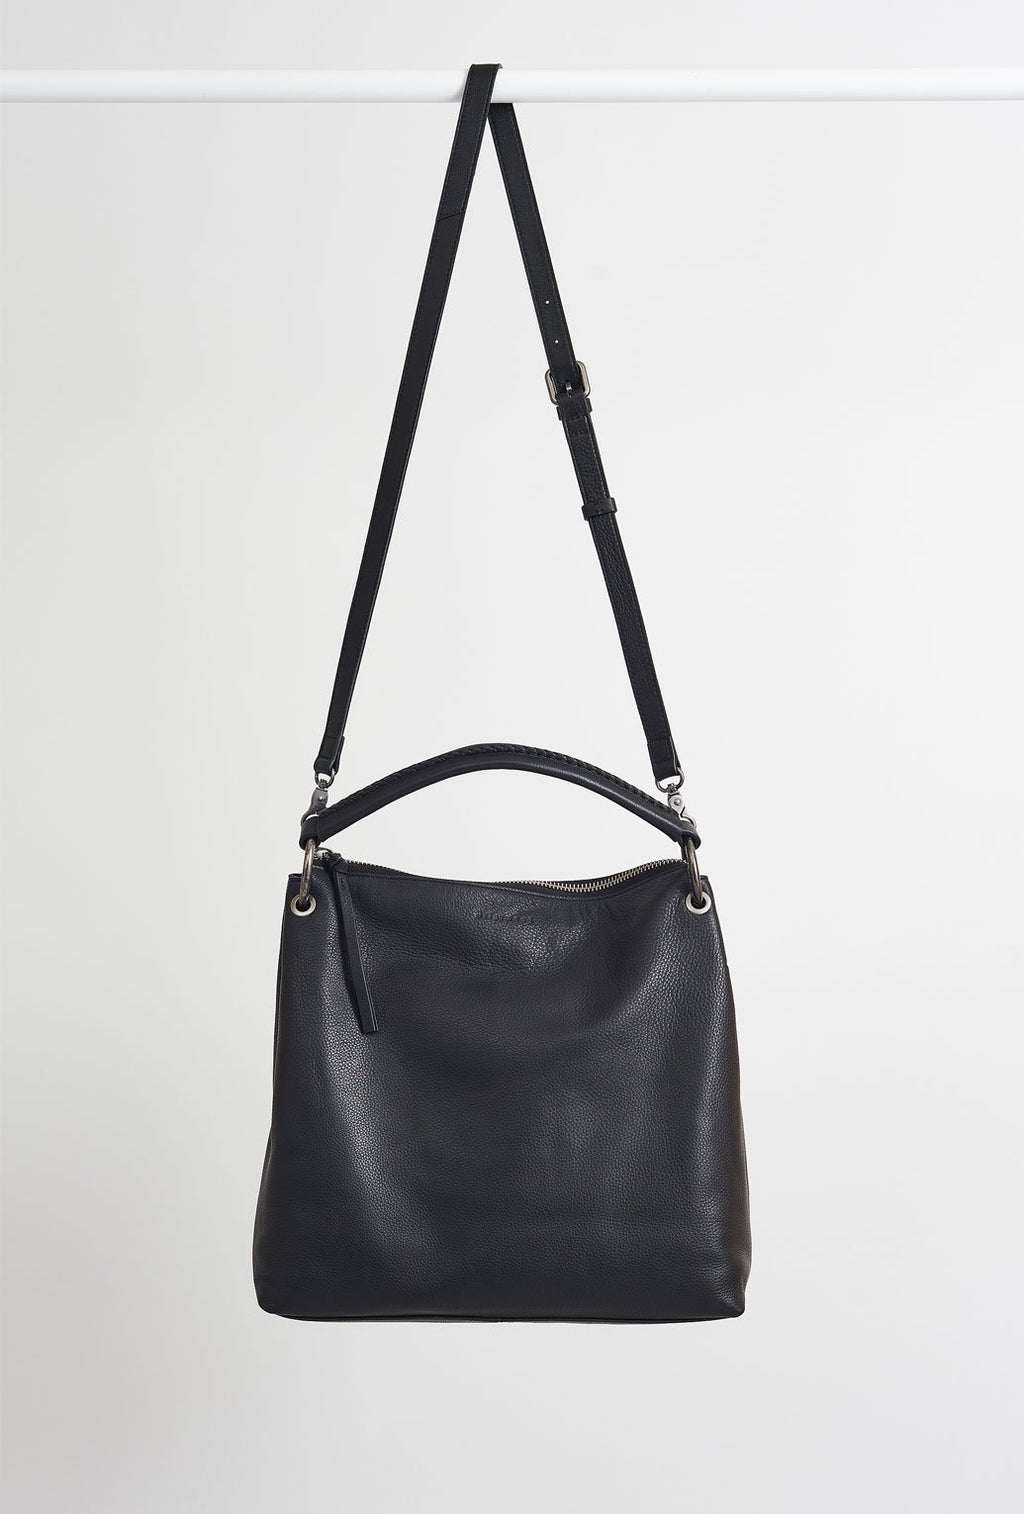 BRIARWOOD PAIGE BAG - BLACK